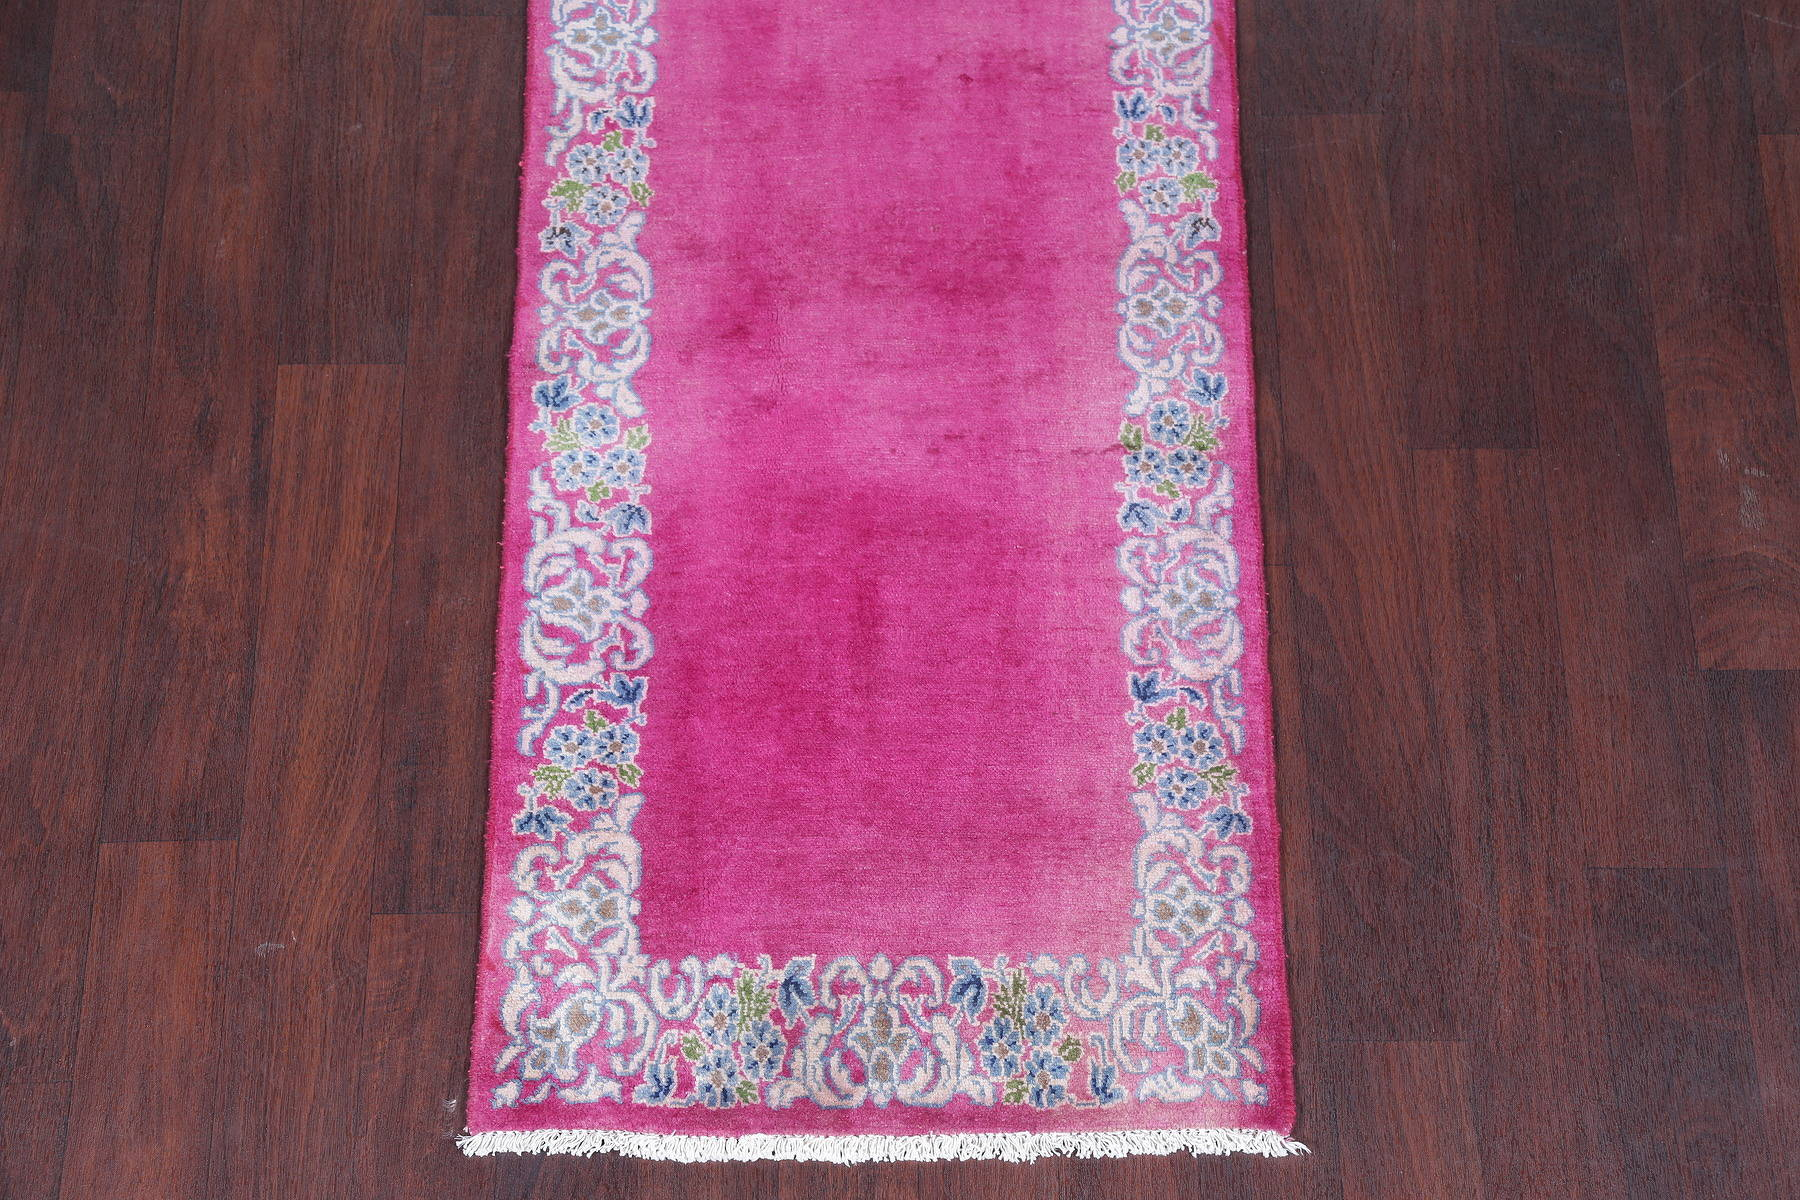 Antique Fuchsia Pink Kerman Persian Hand-Knotted Runner Rug Wool 2x18